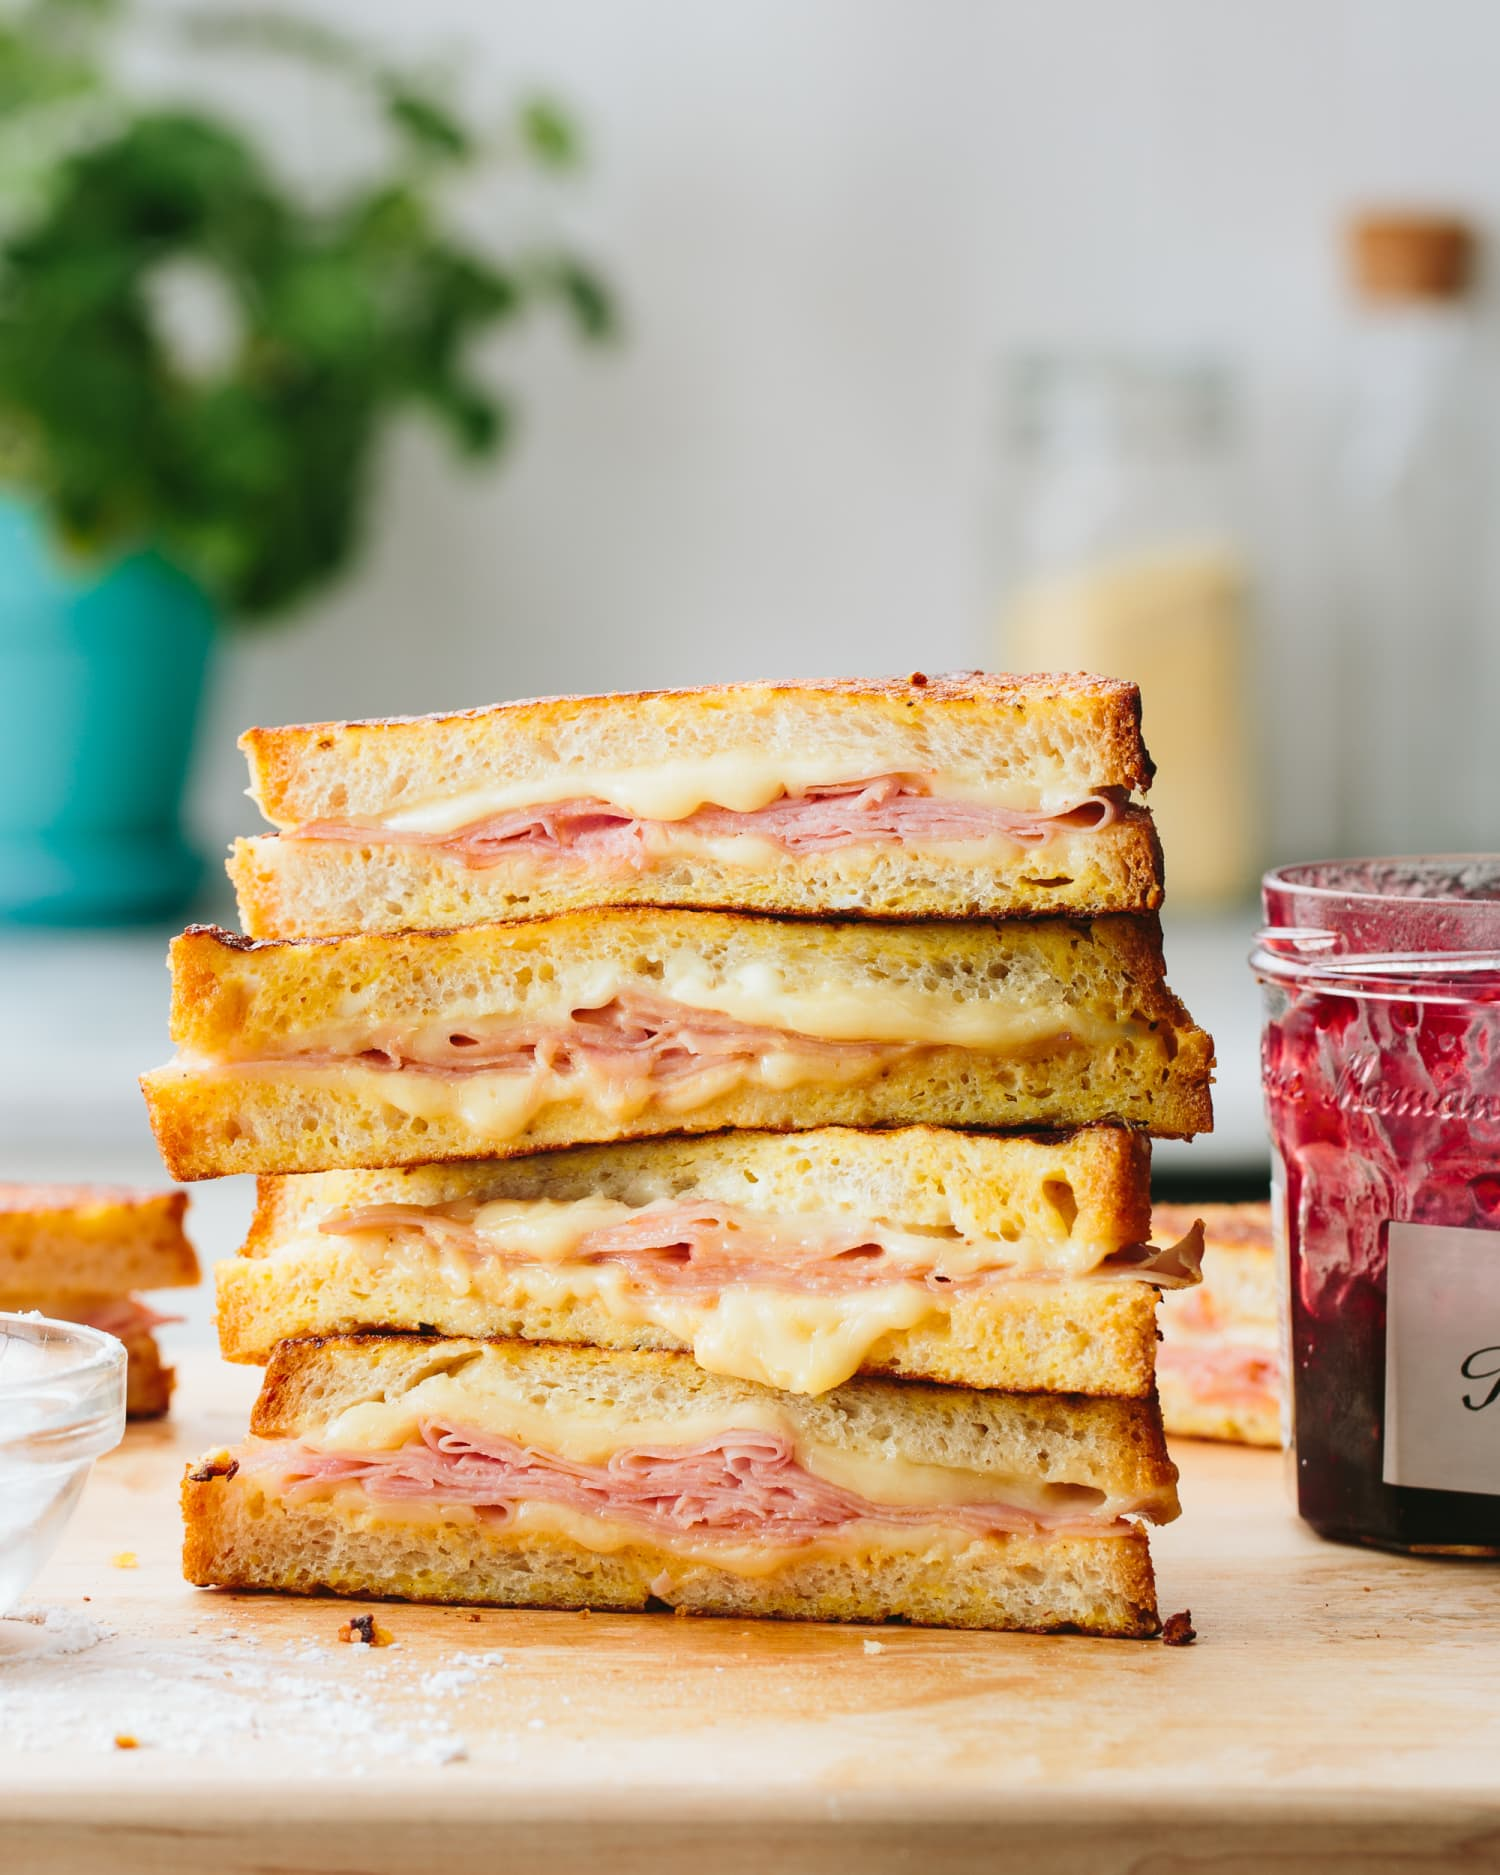 This Sweet and Savory Sandwich Is What Every Grilled Cheese Wants to Grow Up to Be